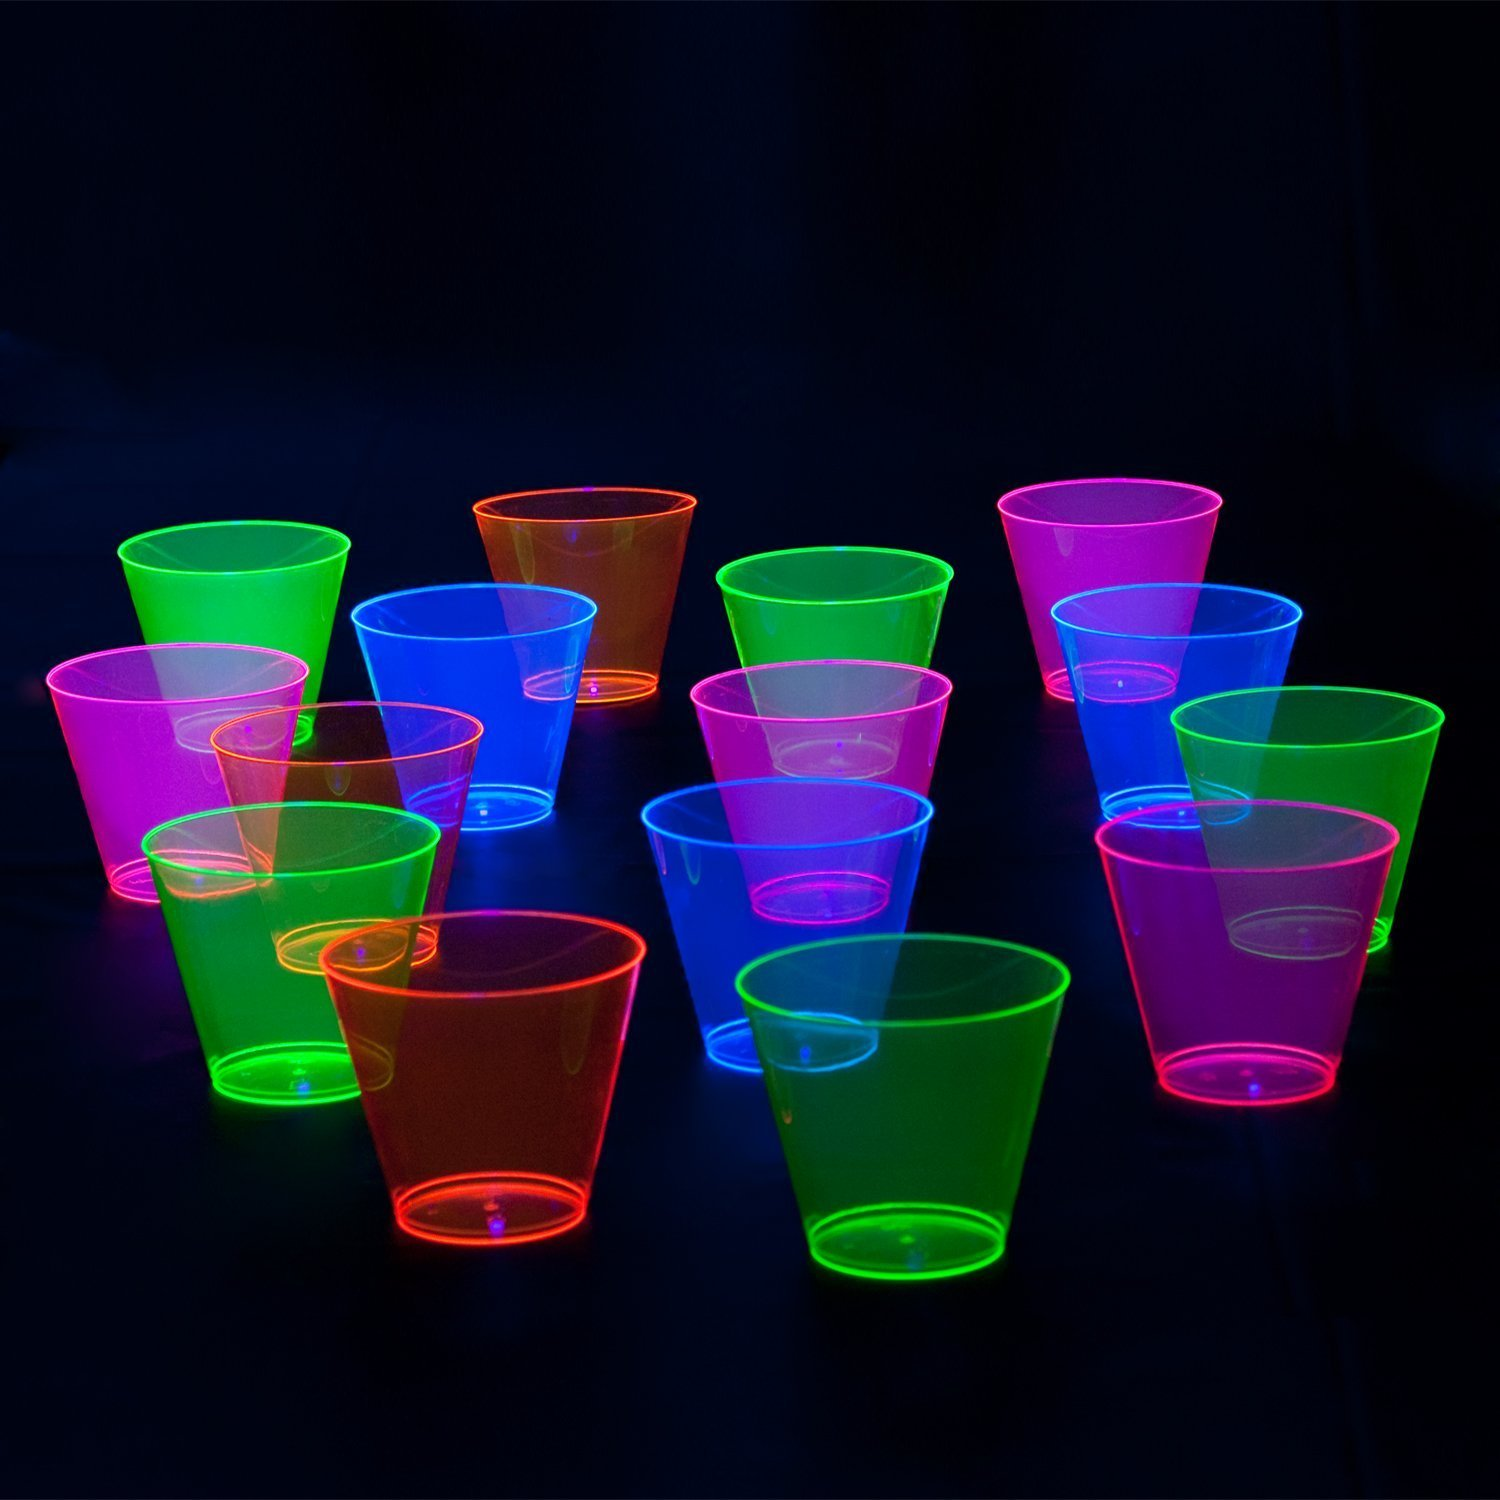 Party Essentials Hard Plastic 9-Ounce Party Cups/Old Fashioned Tumblers, 200-Count, Assorted Neon by Party Essentials (Image #3)